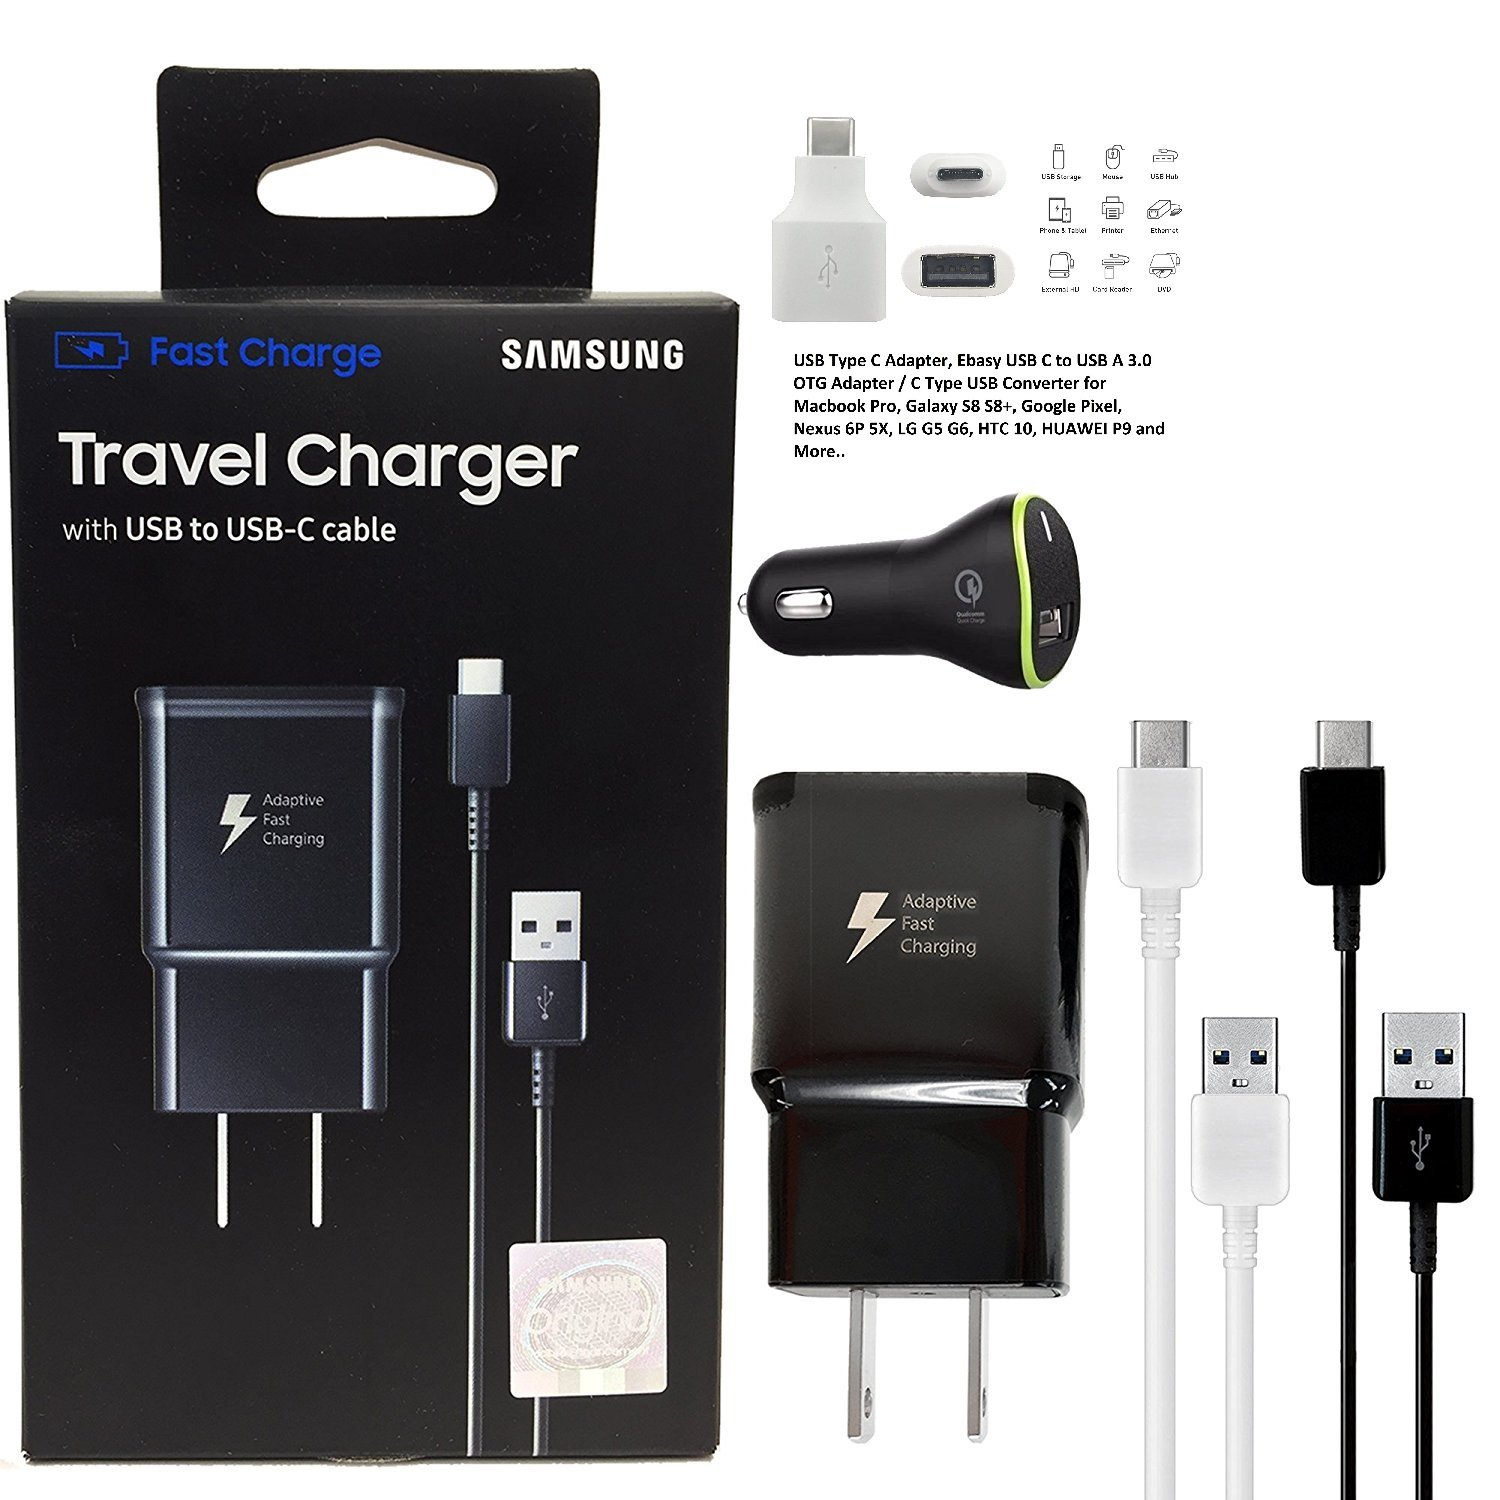 Offical Oem Samsung Adaptive Fast Charging Charger   For Samsung Galaxy S8/S8+/Note8 & W/Puregear Quick Car Charger & Google C Usb Adapter (Us Retail Packing Kit) by Pure Gear